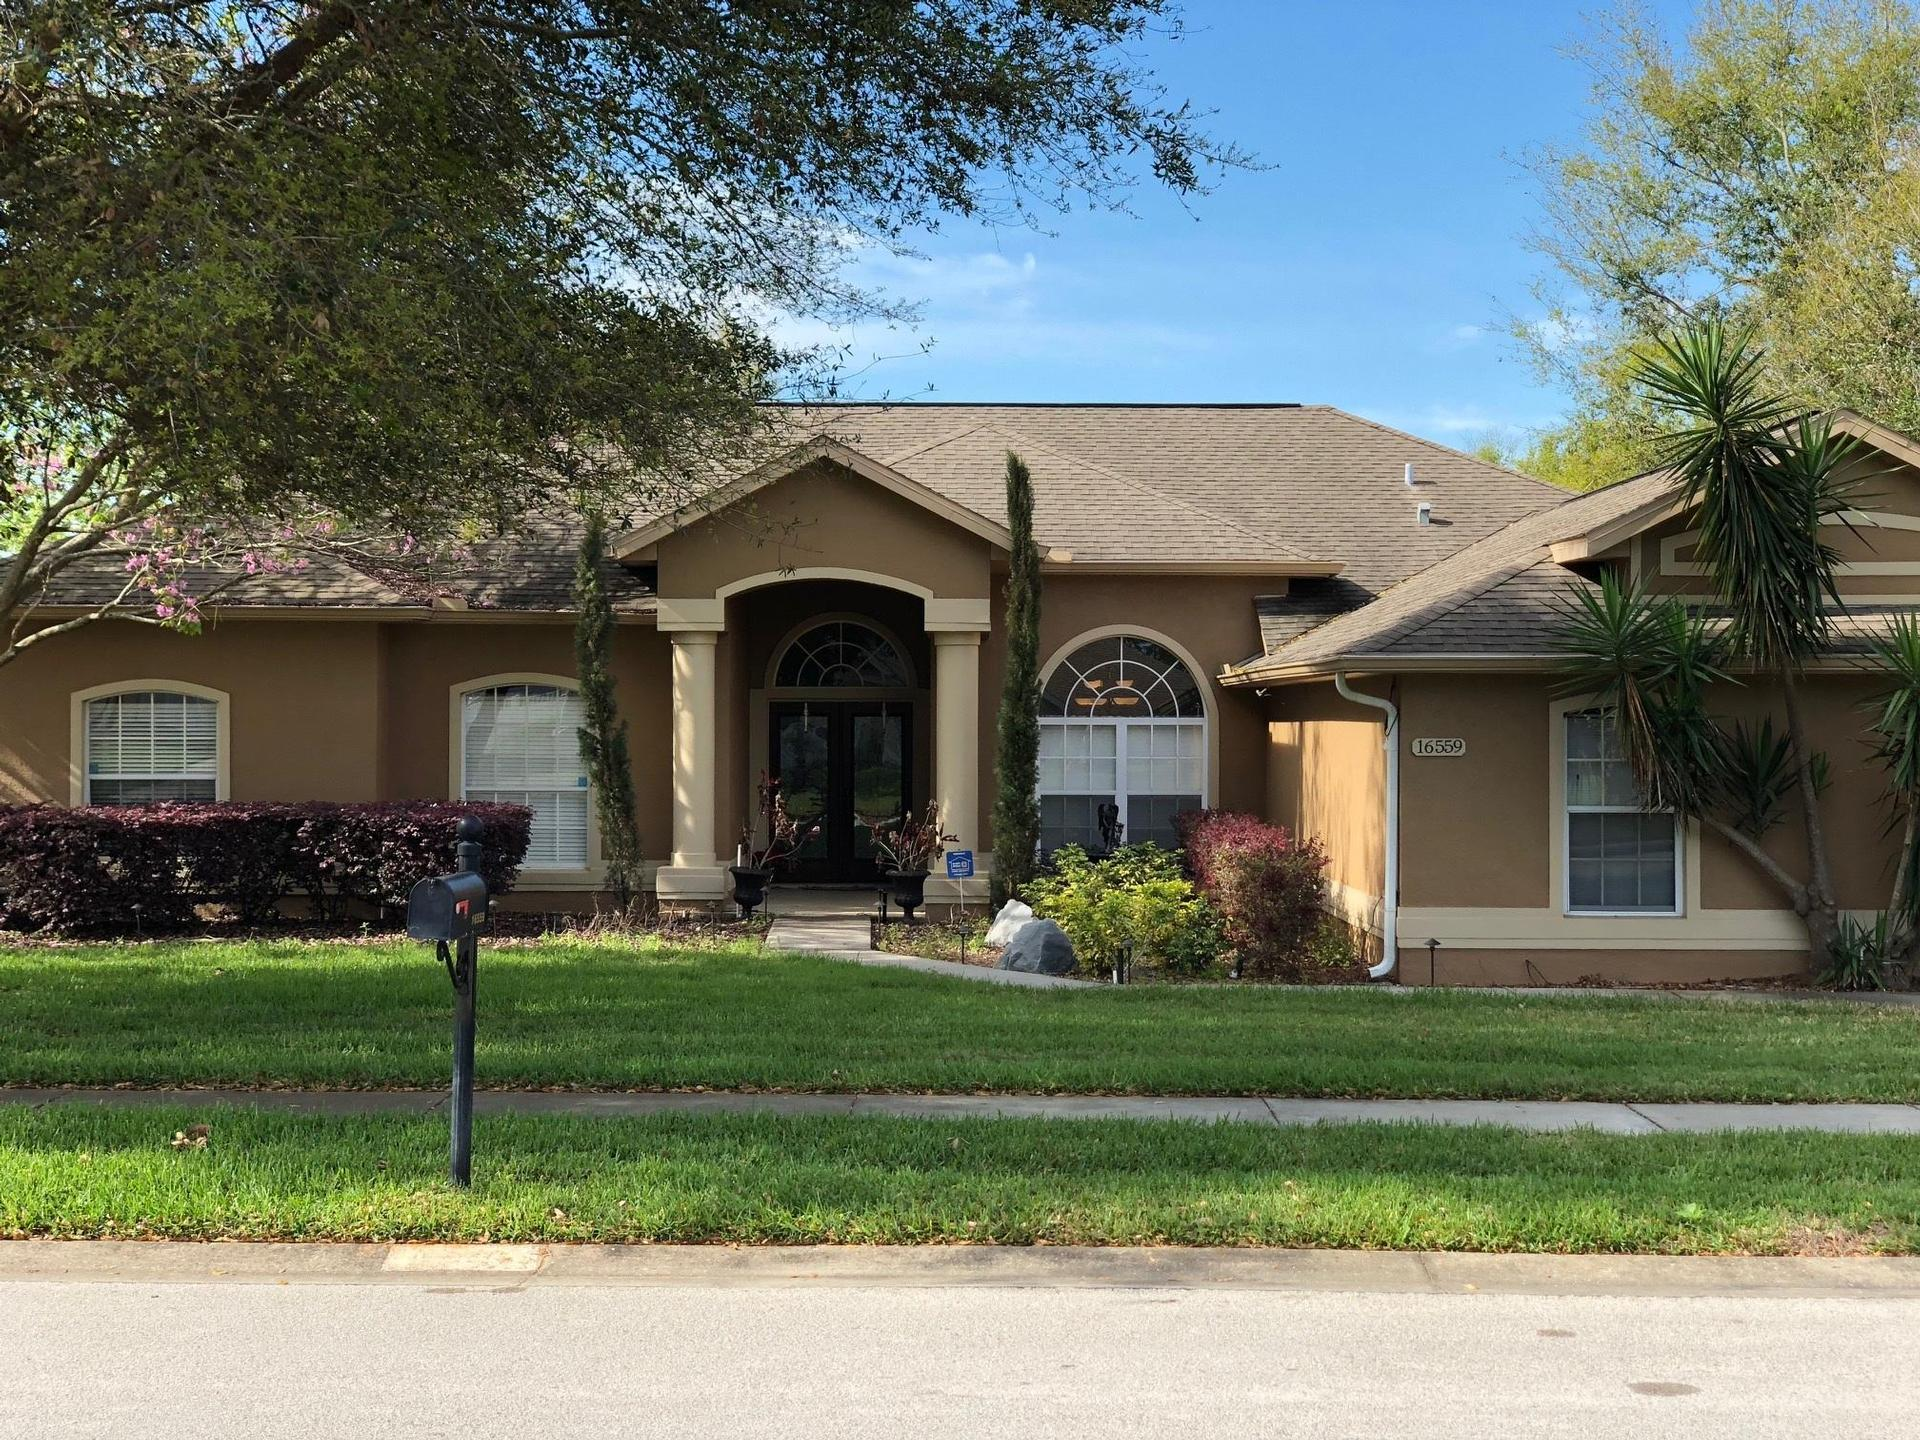 Photo of property: 16559 Arrowhead Trl, Clermont Fl 34711